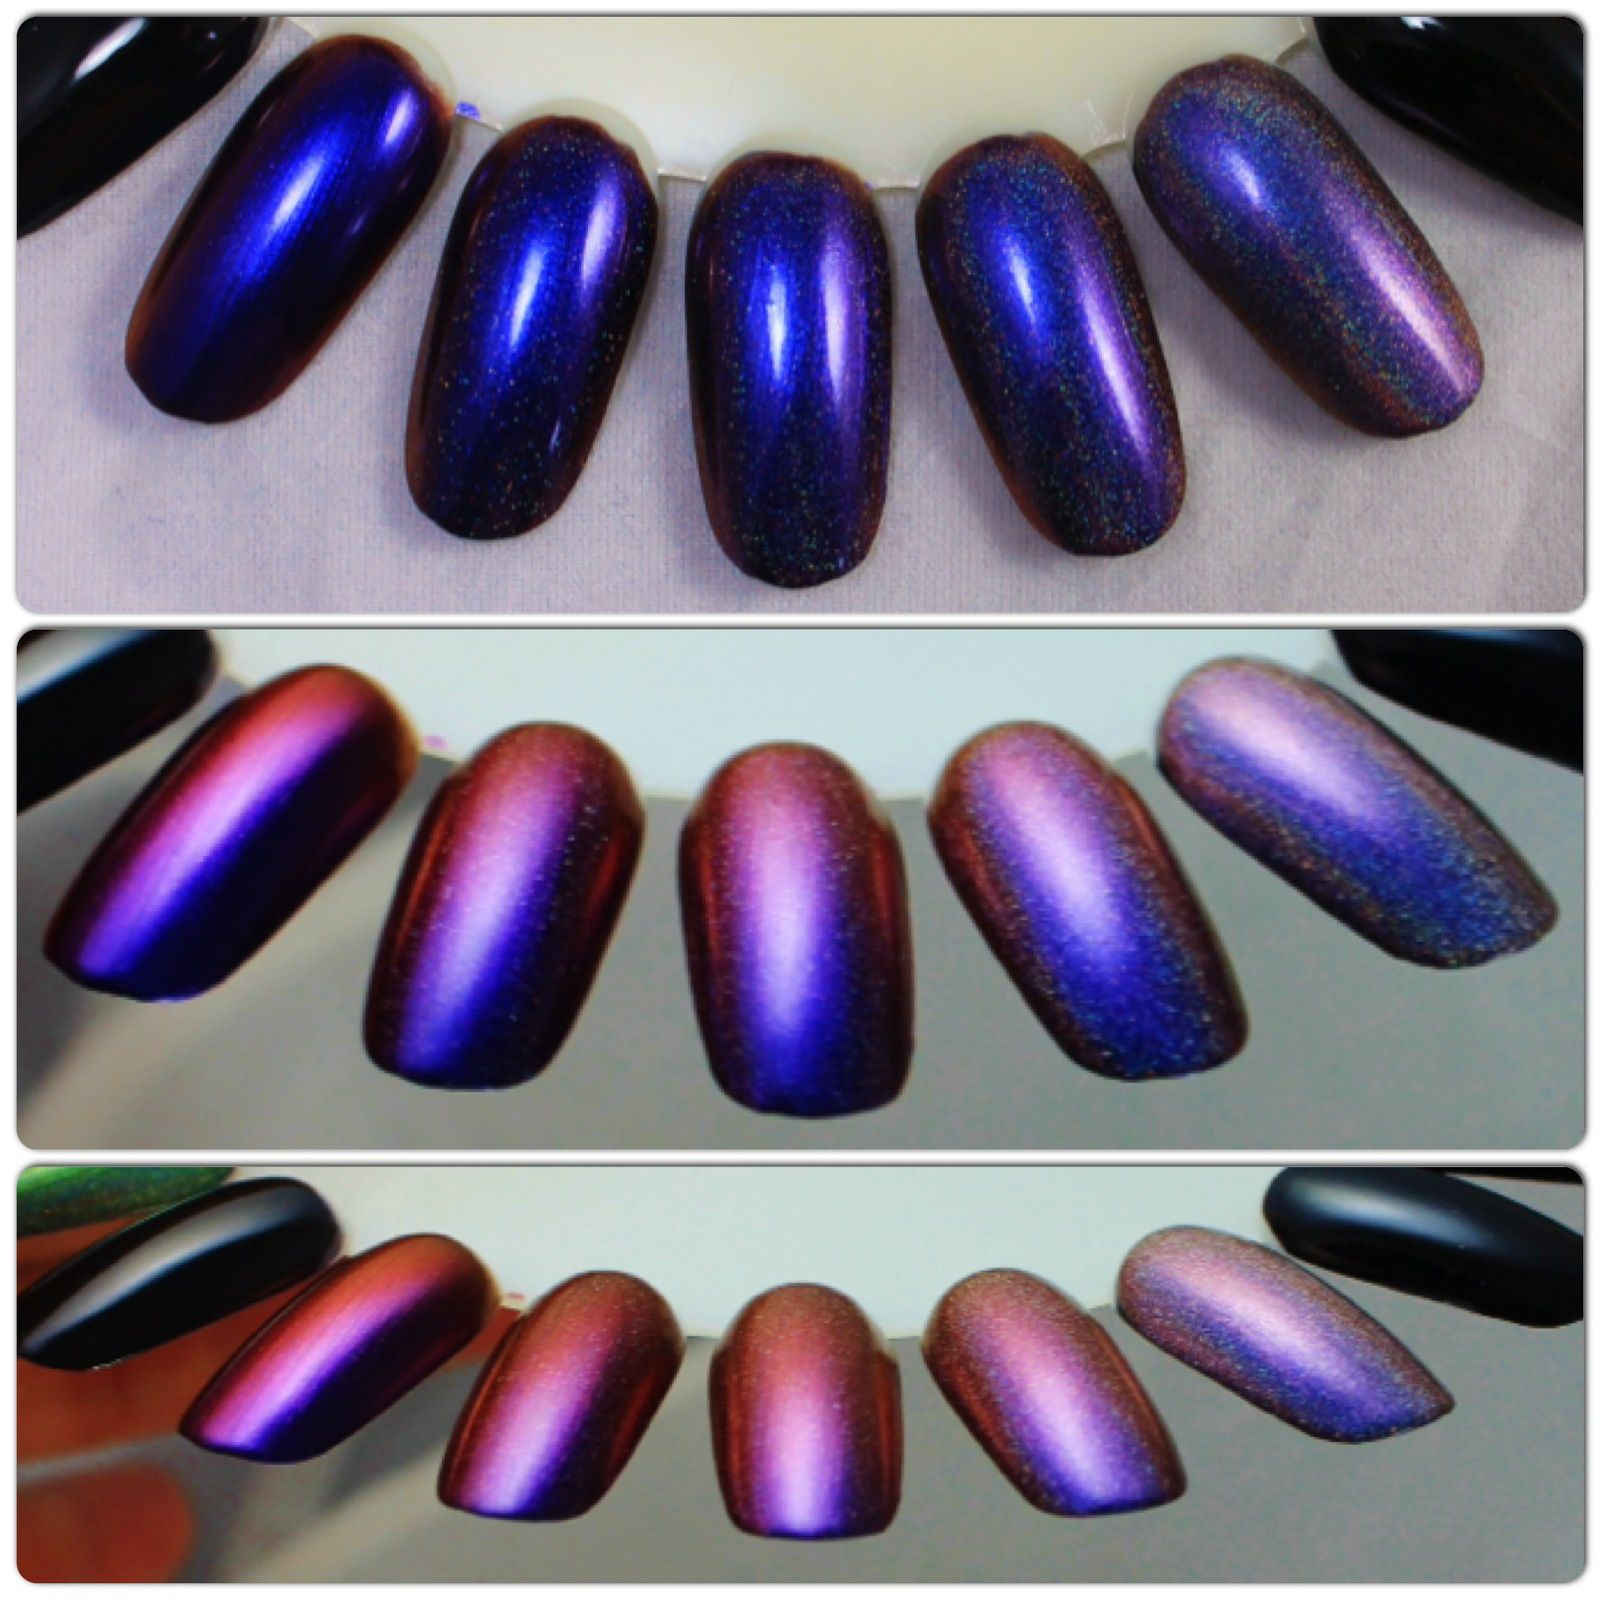 ILNP Cygnus Loop / EP Octupus Garden / HITS Sweet Dreams / EP Time To Pretend / DDP Killer Queen